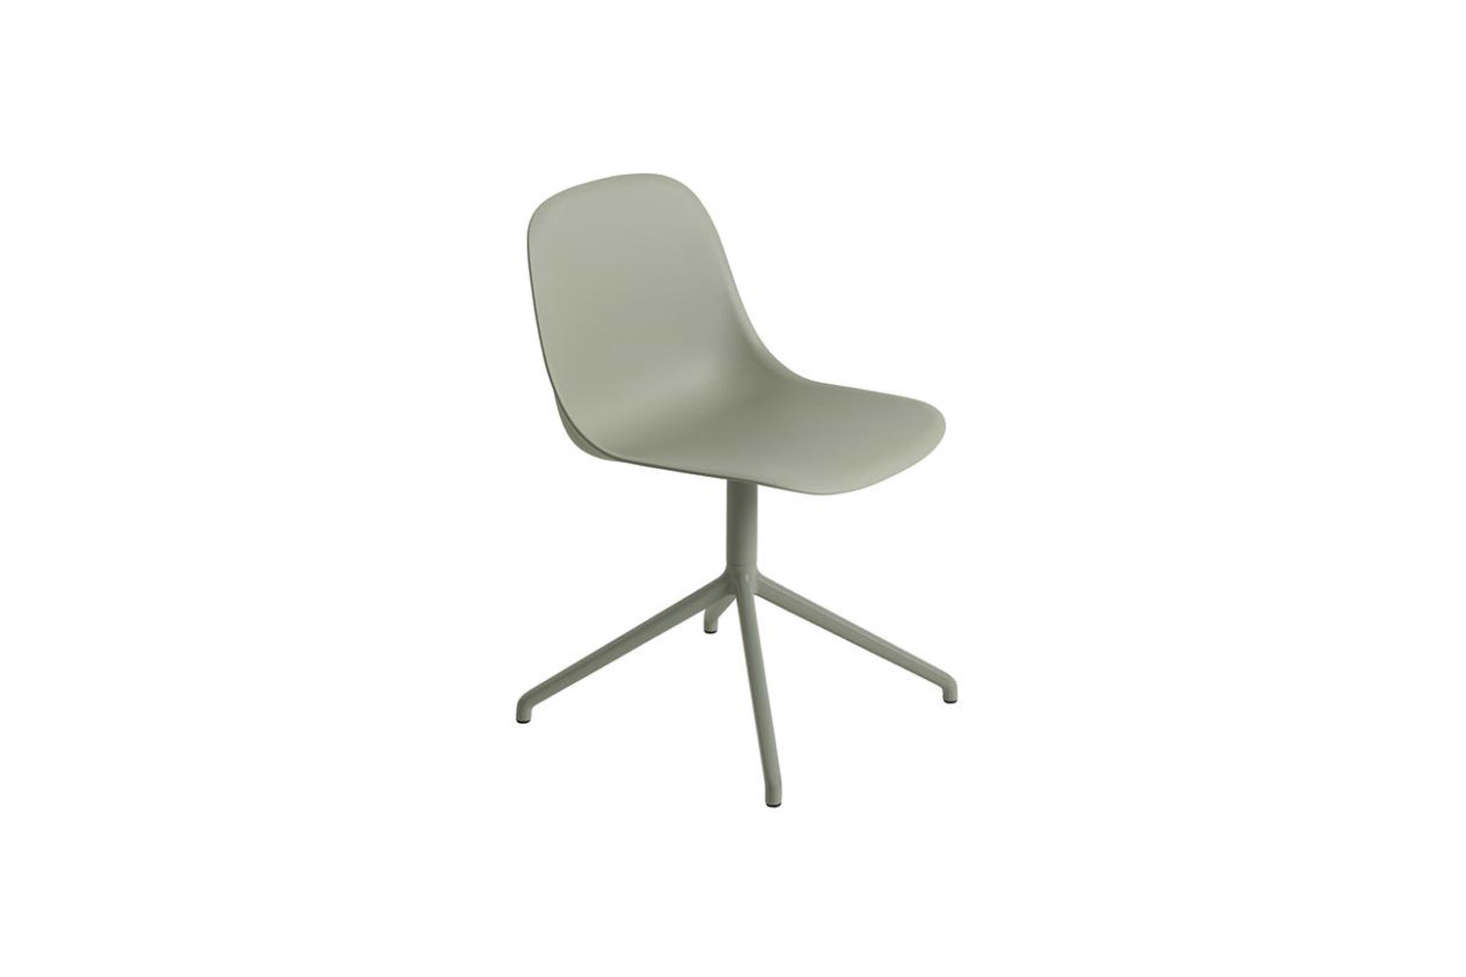 10 Easy Pieces Modern Desk Chairs Without Wheels Remodelista